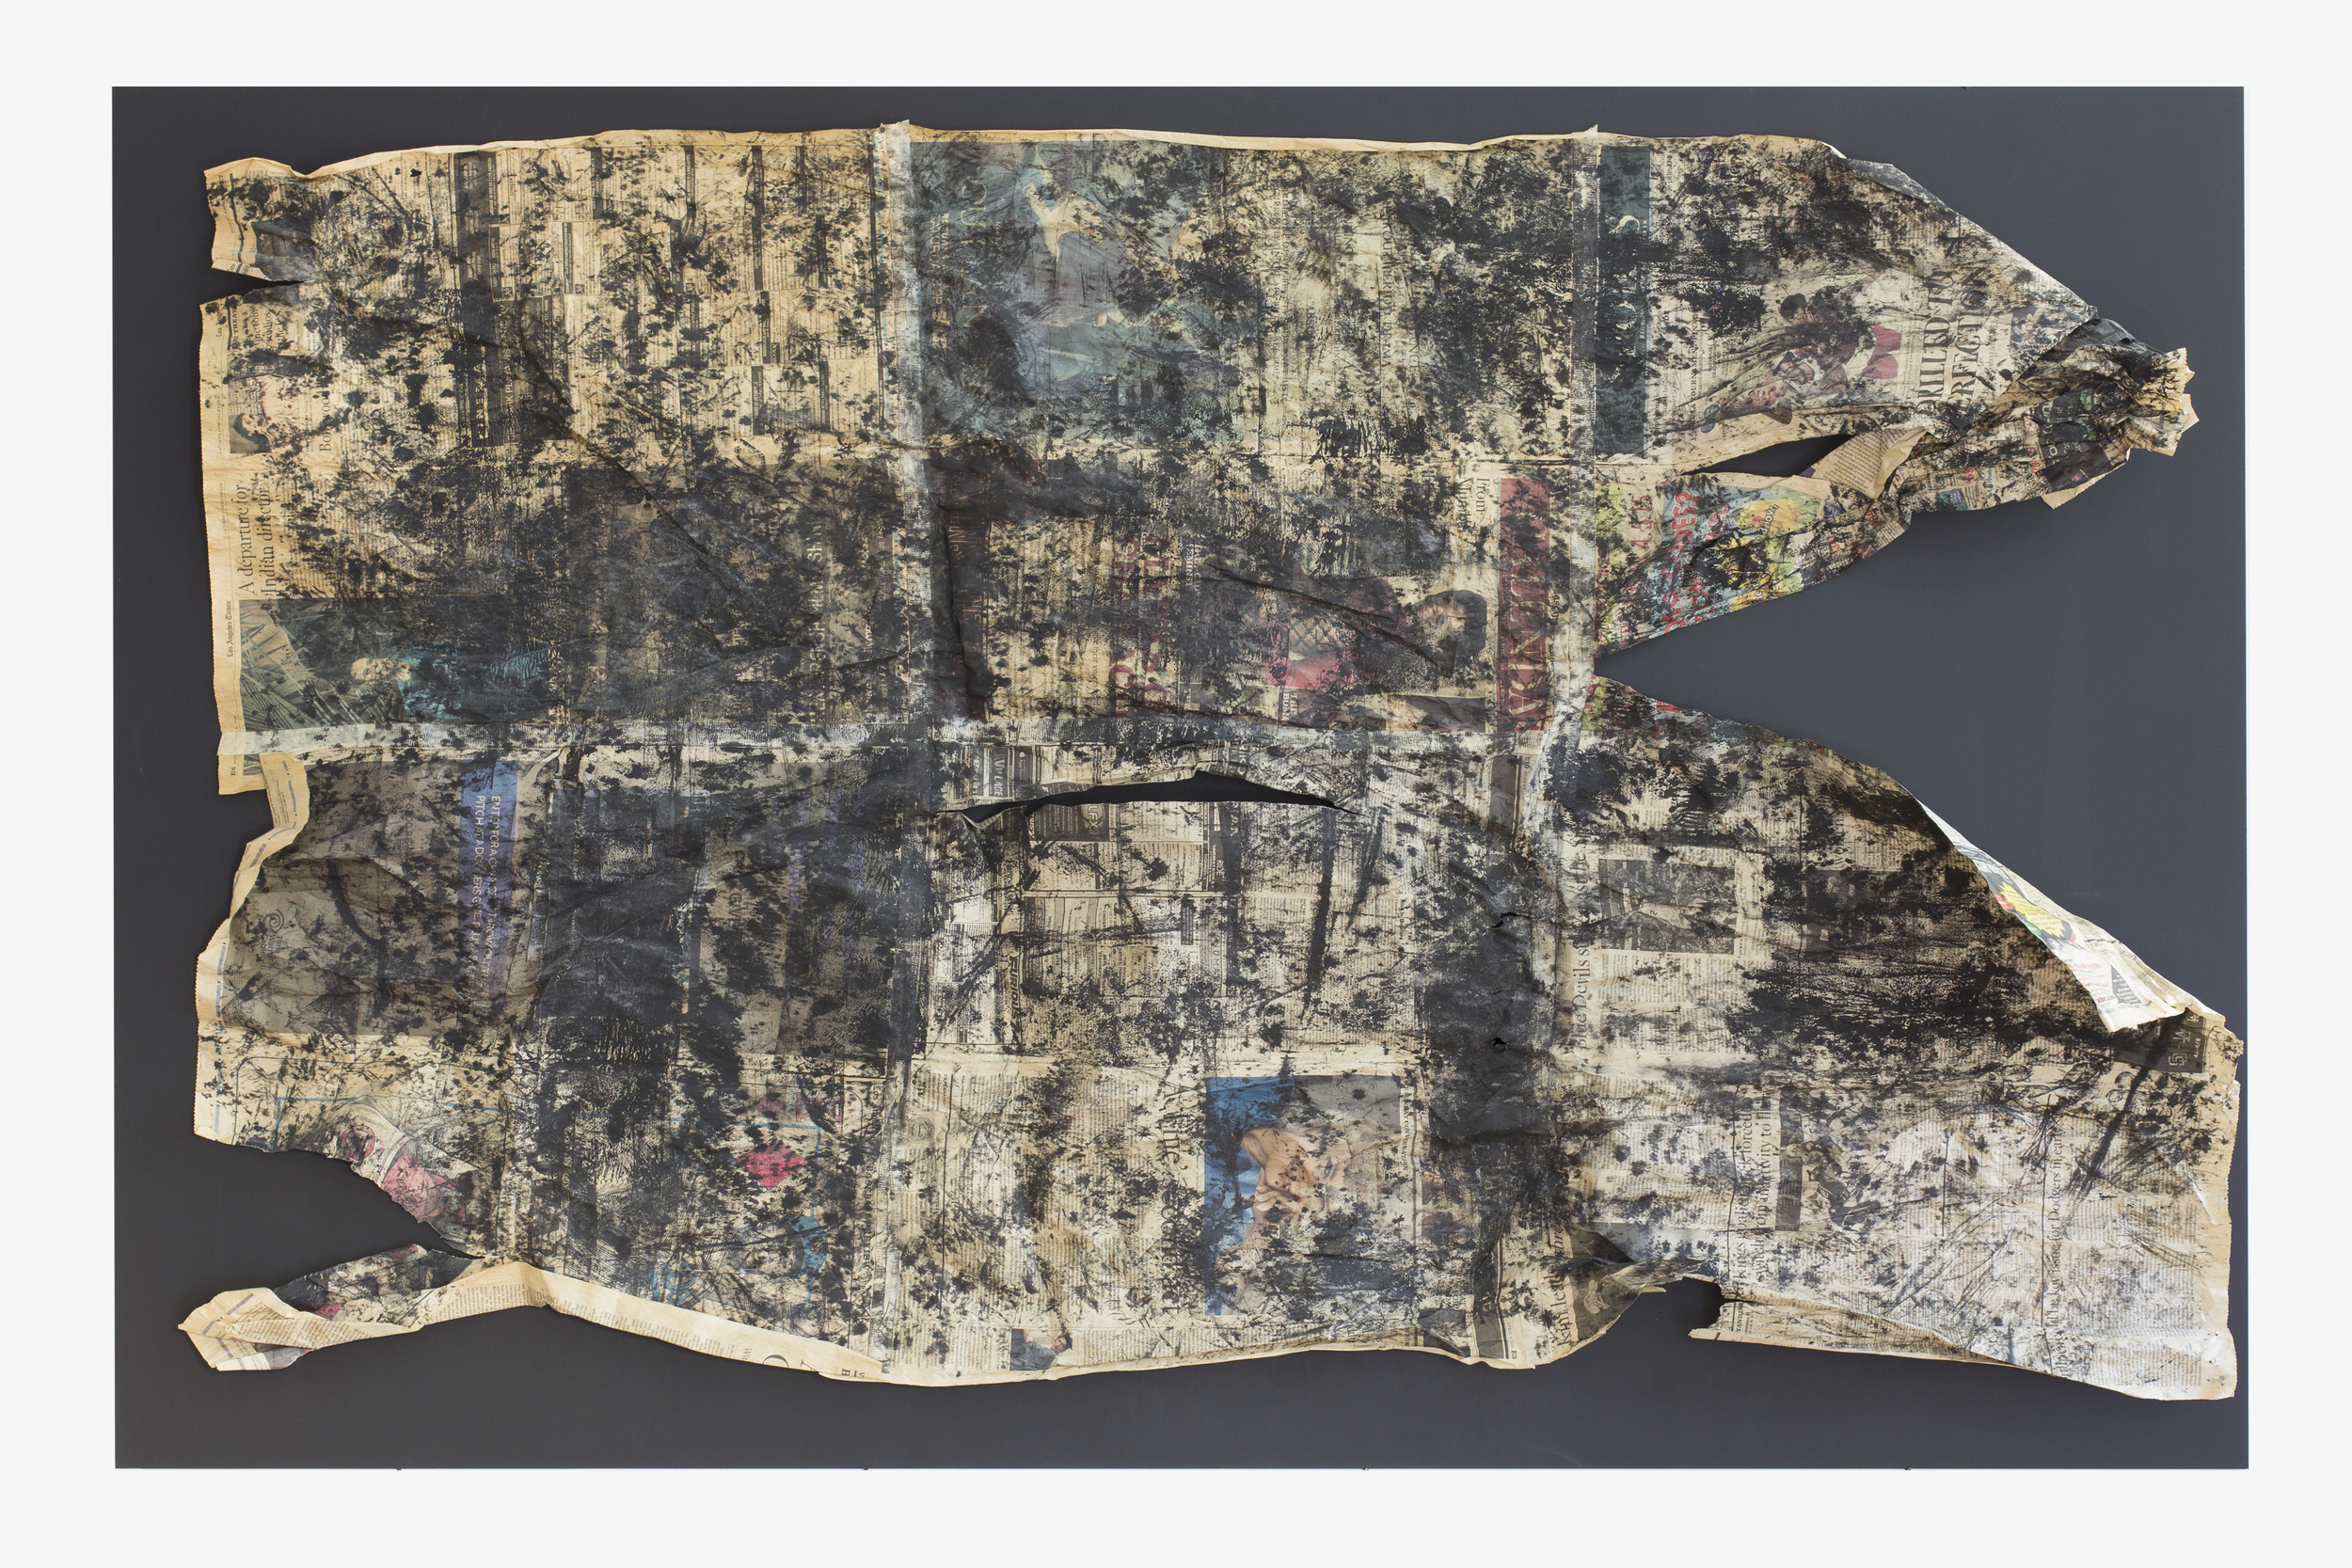 Anna McCarthy - Filthy Rich Earth - 2015 - frottage - newsprint on MDF - 110 x 170 cm